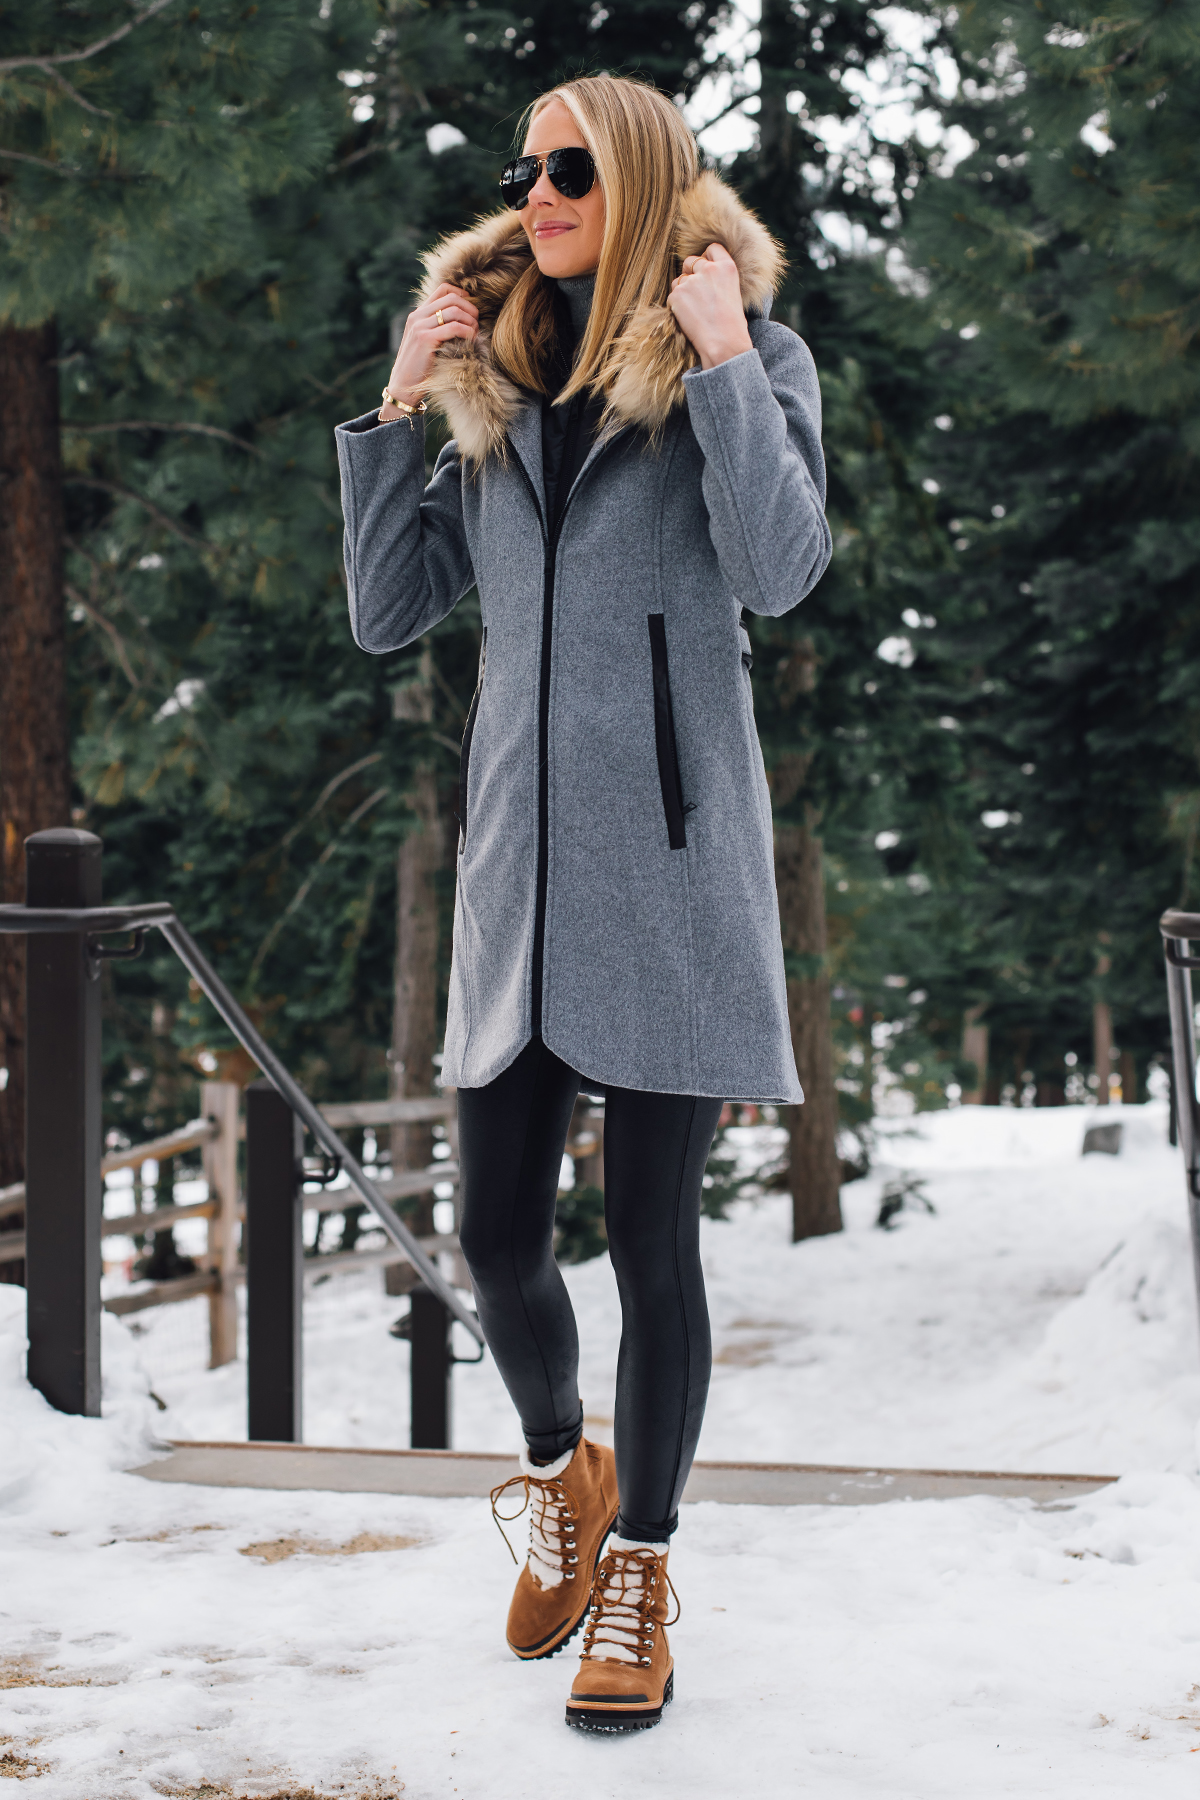 Blonde Woman Wearing Grey Wool Coat with Faux Fur Hood Spanx Black Faux Leather Leggings Marc Fisher Shearling Brown Booties Outfit Fashion Jackson San Diego Fashion Blogger Lake Tahoe Winter Outfit